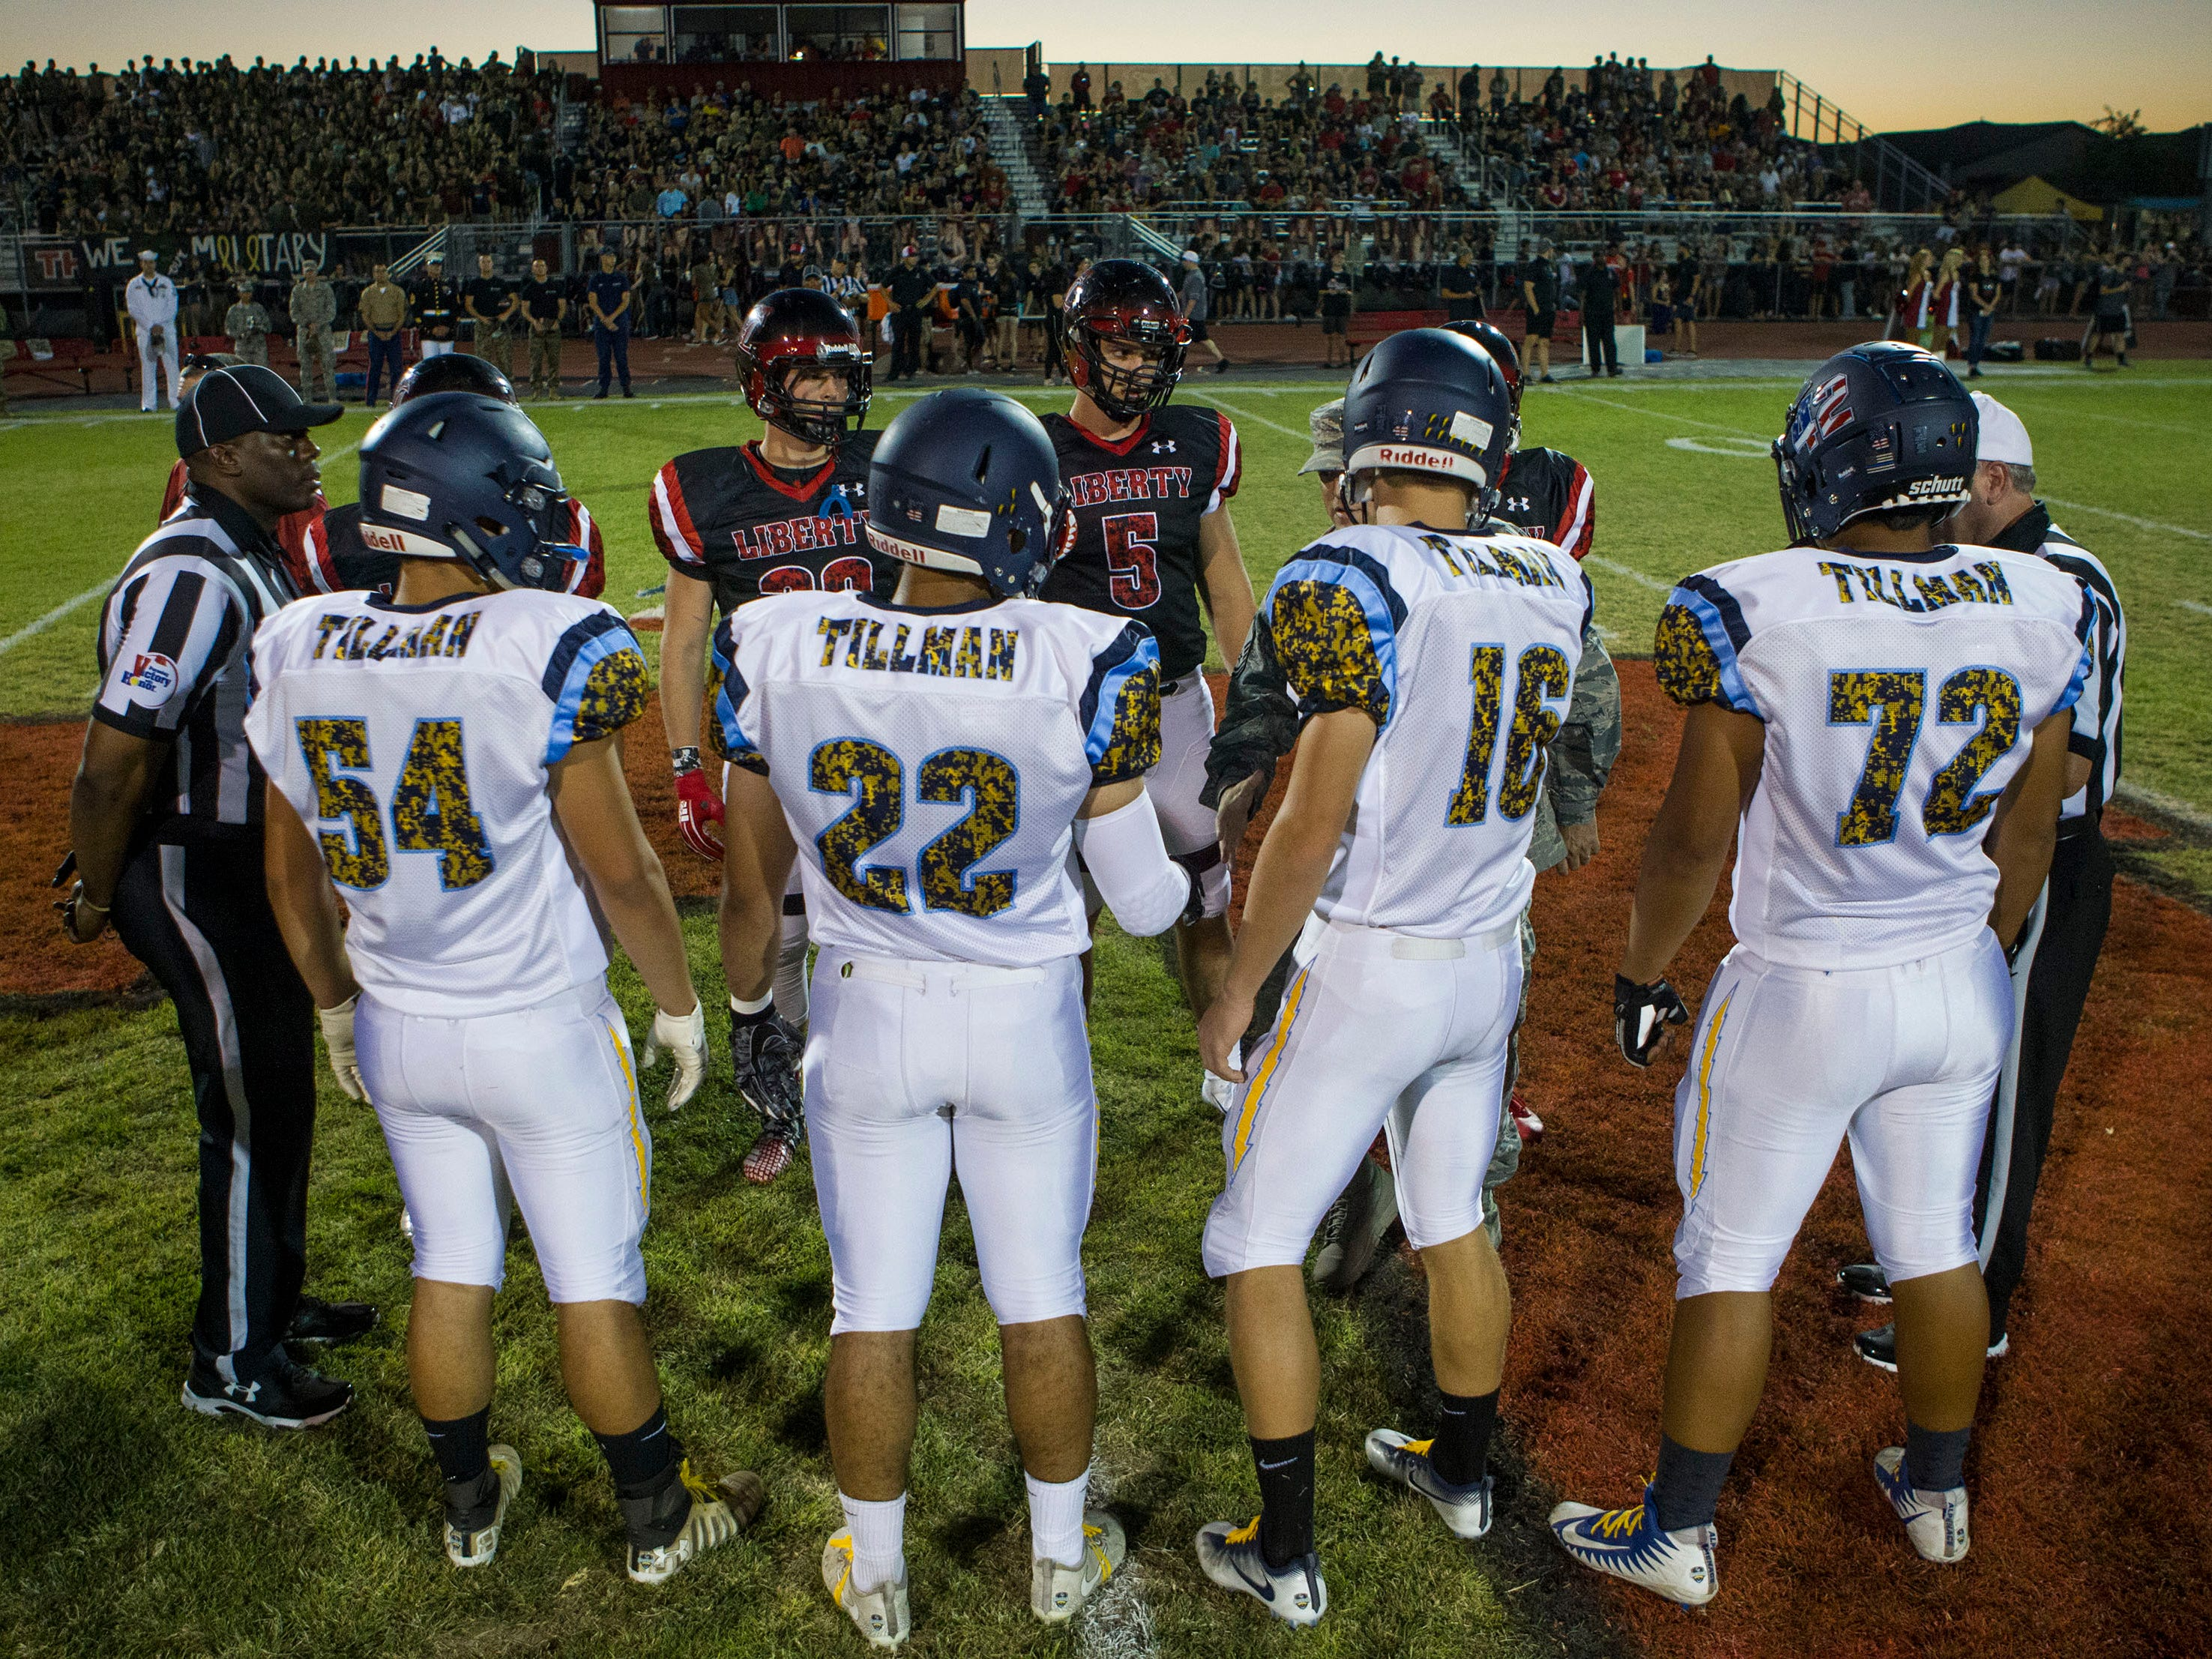 Liberty and Leland (CA) captains meet for the coin toss before their game in Peoria Friday, Sept.14, 2018. #azhsfb